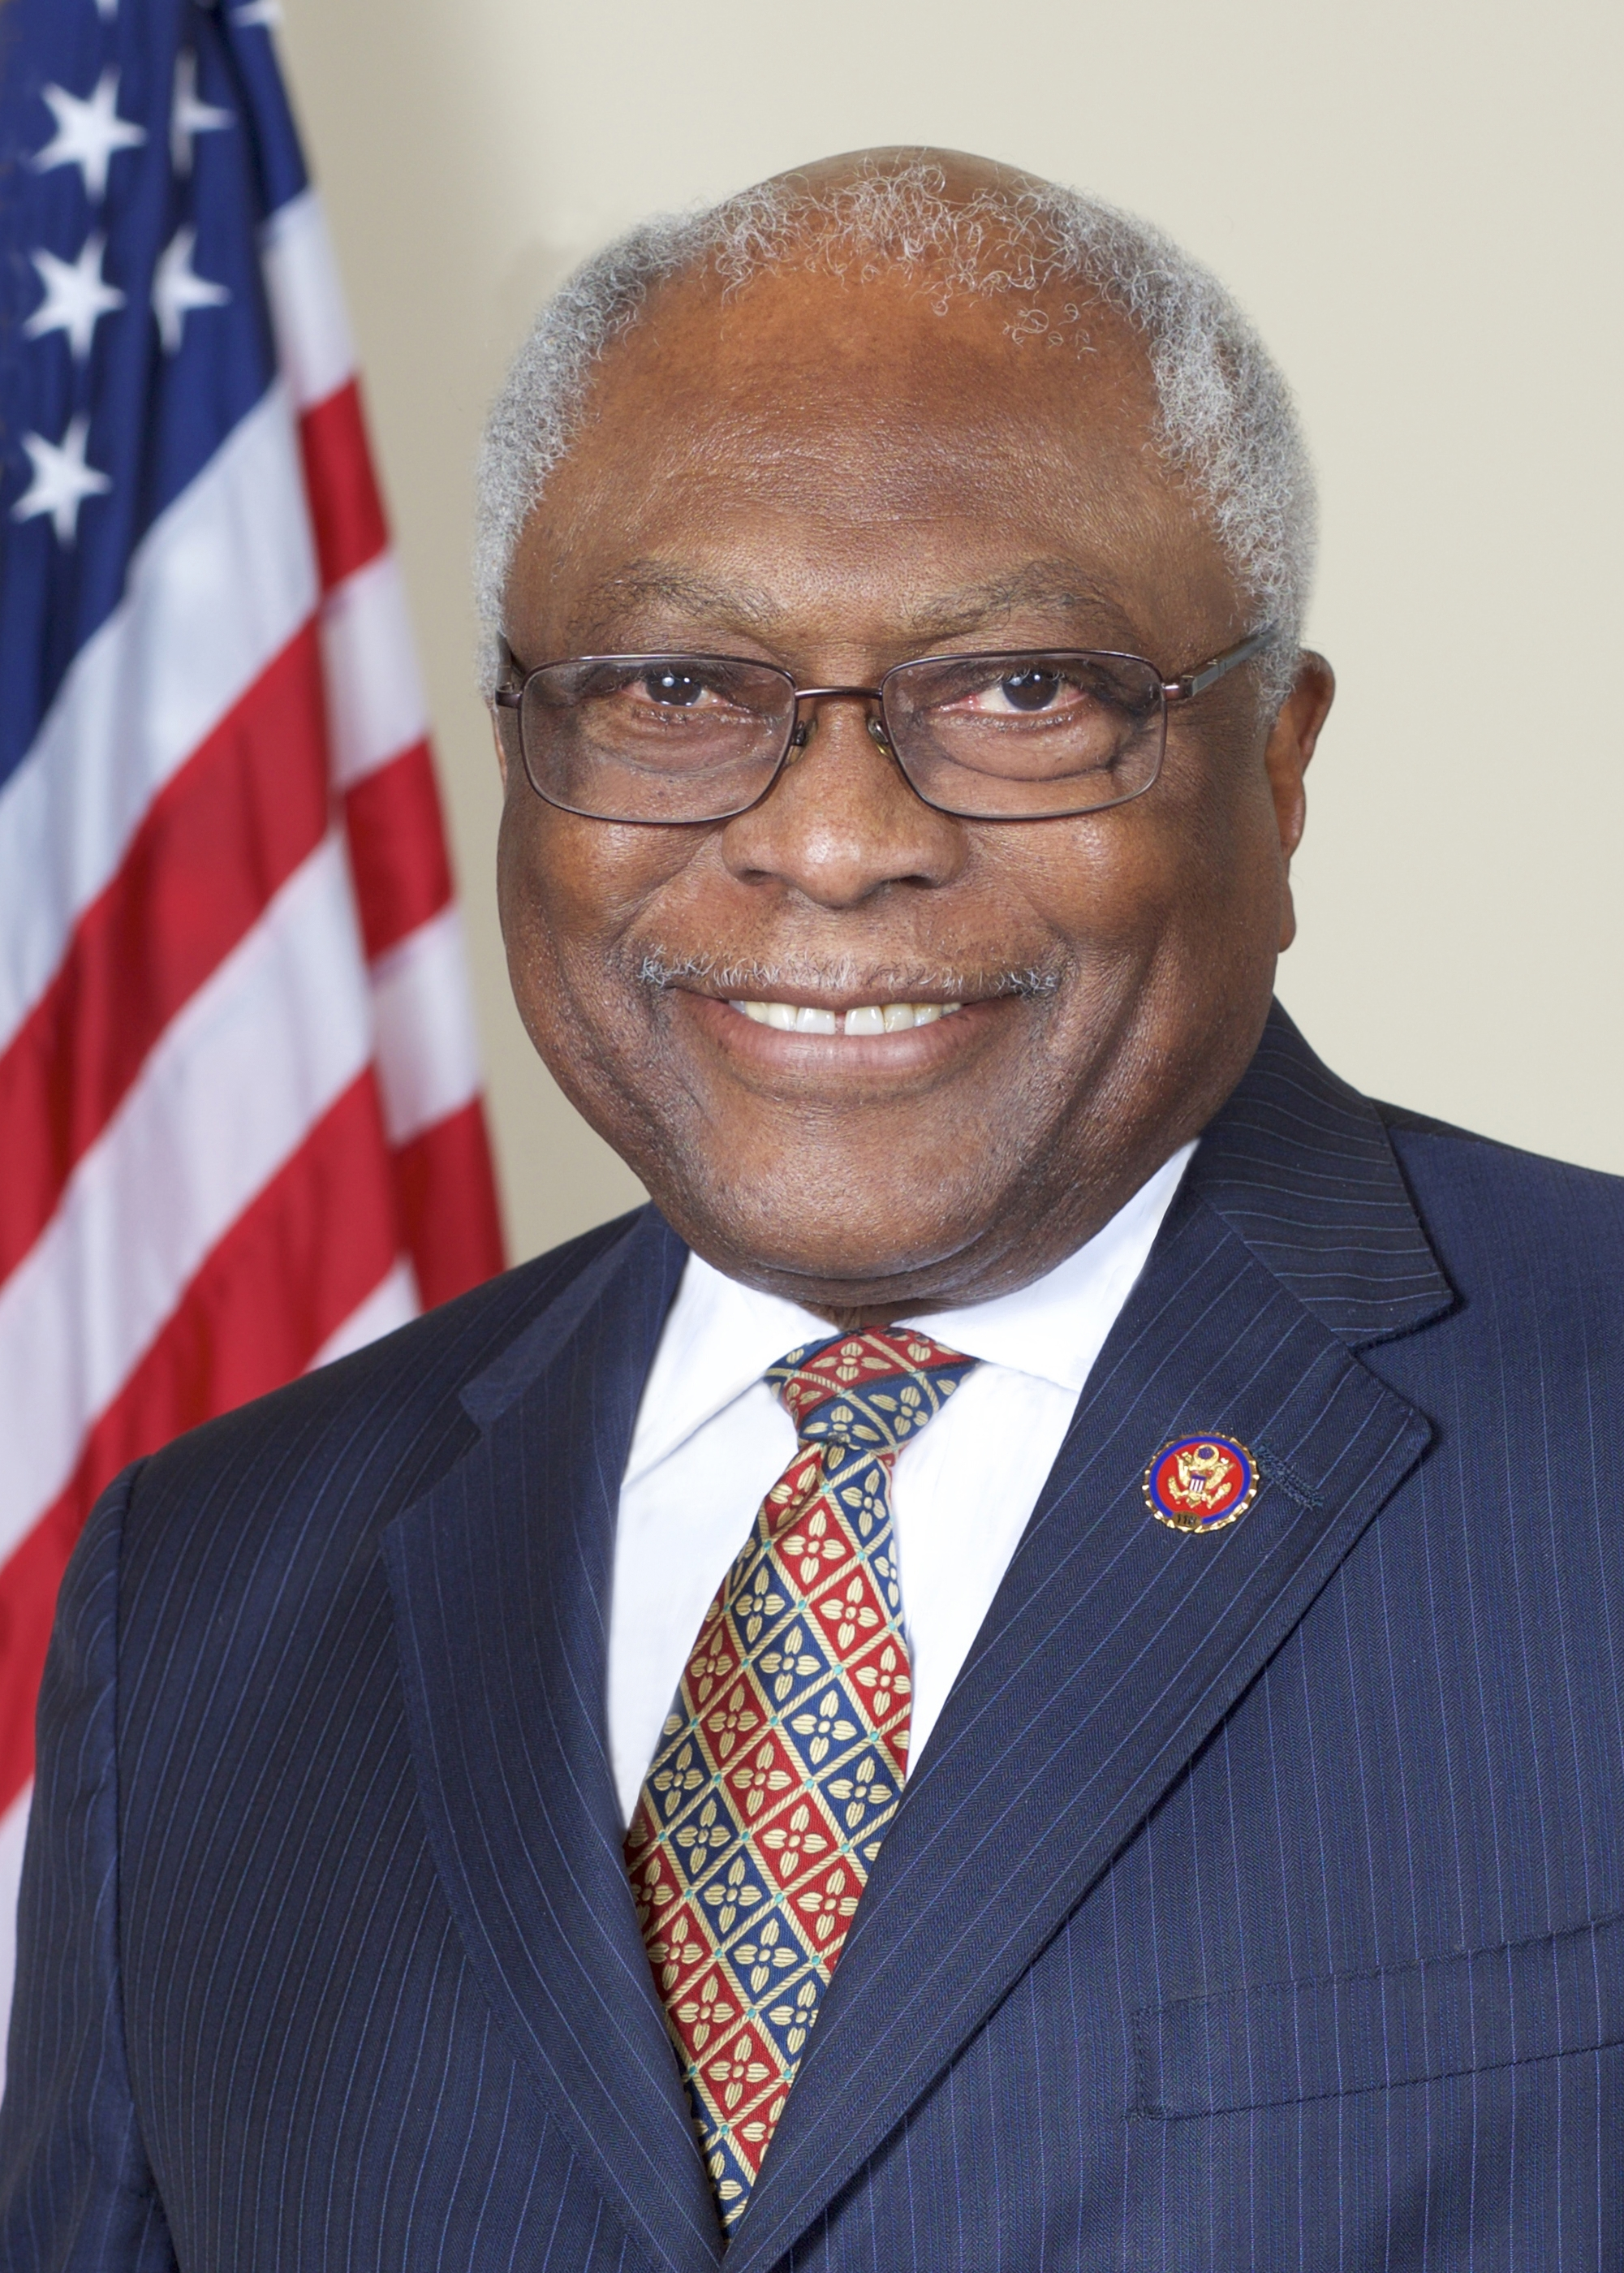 Jim Clyburn - Wikipedia